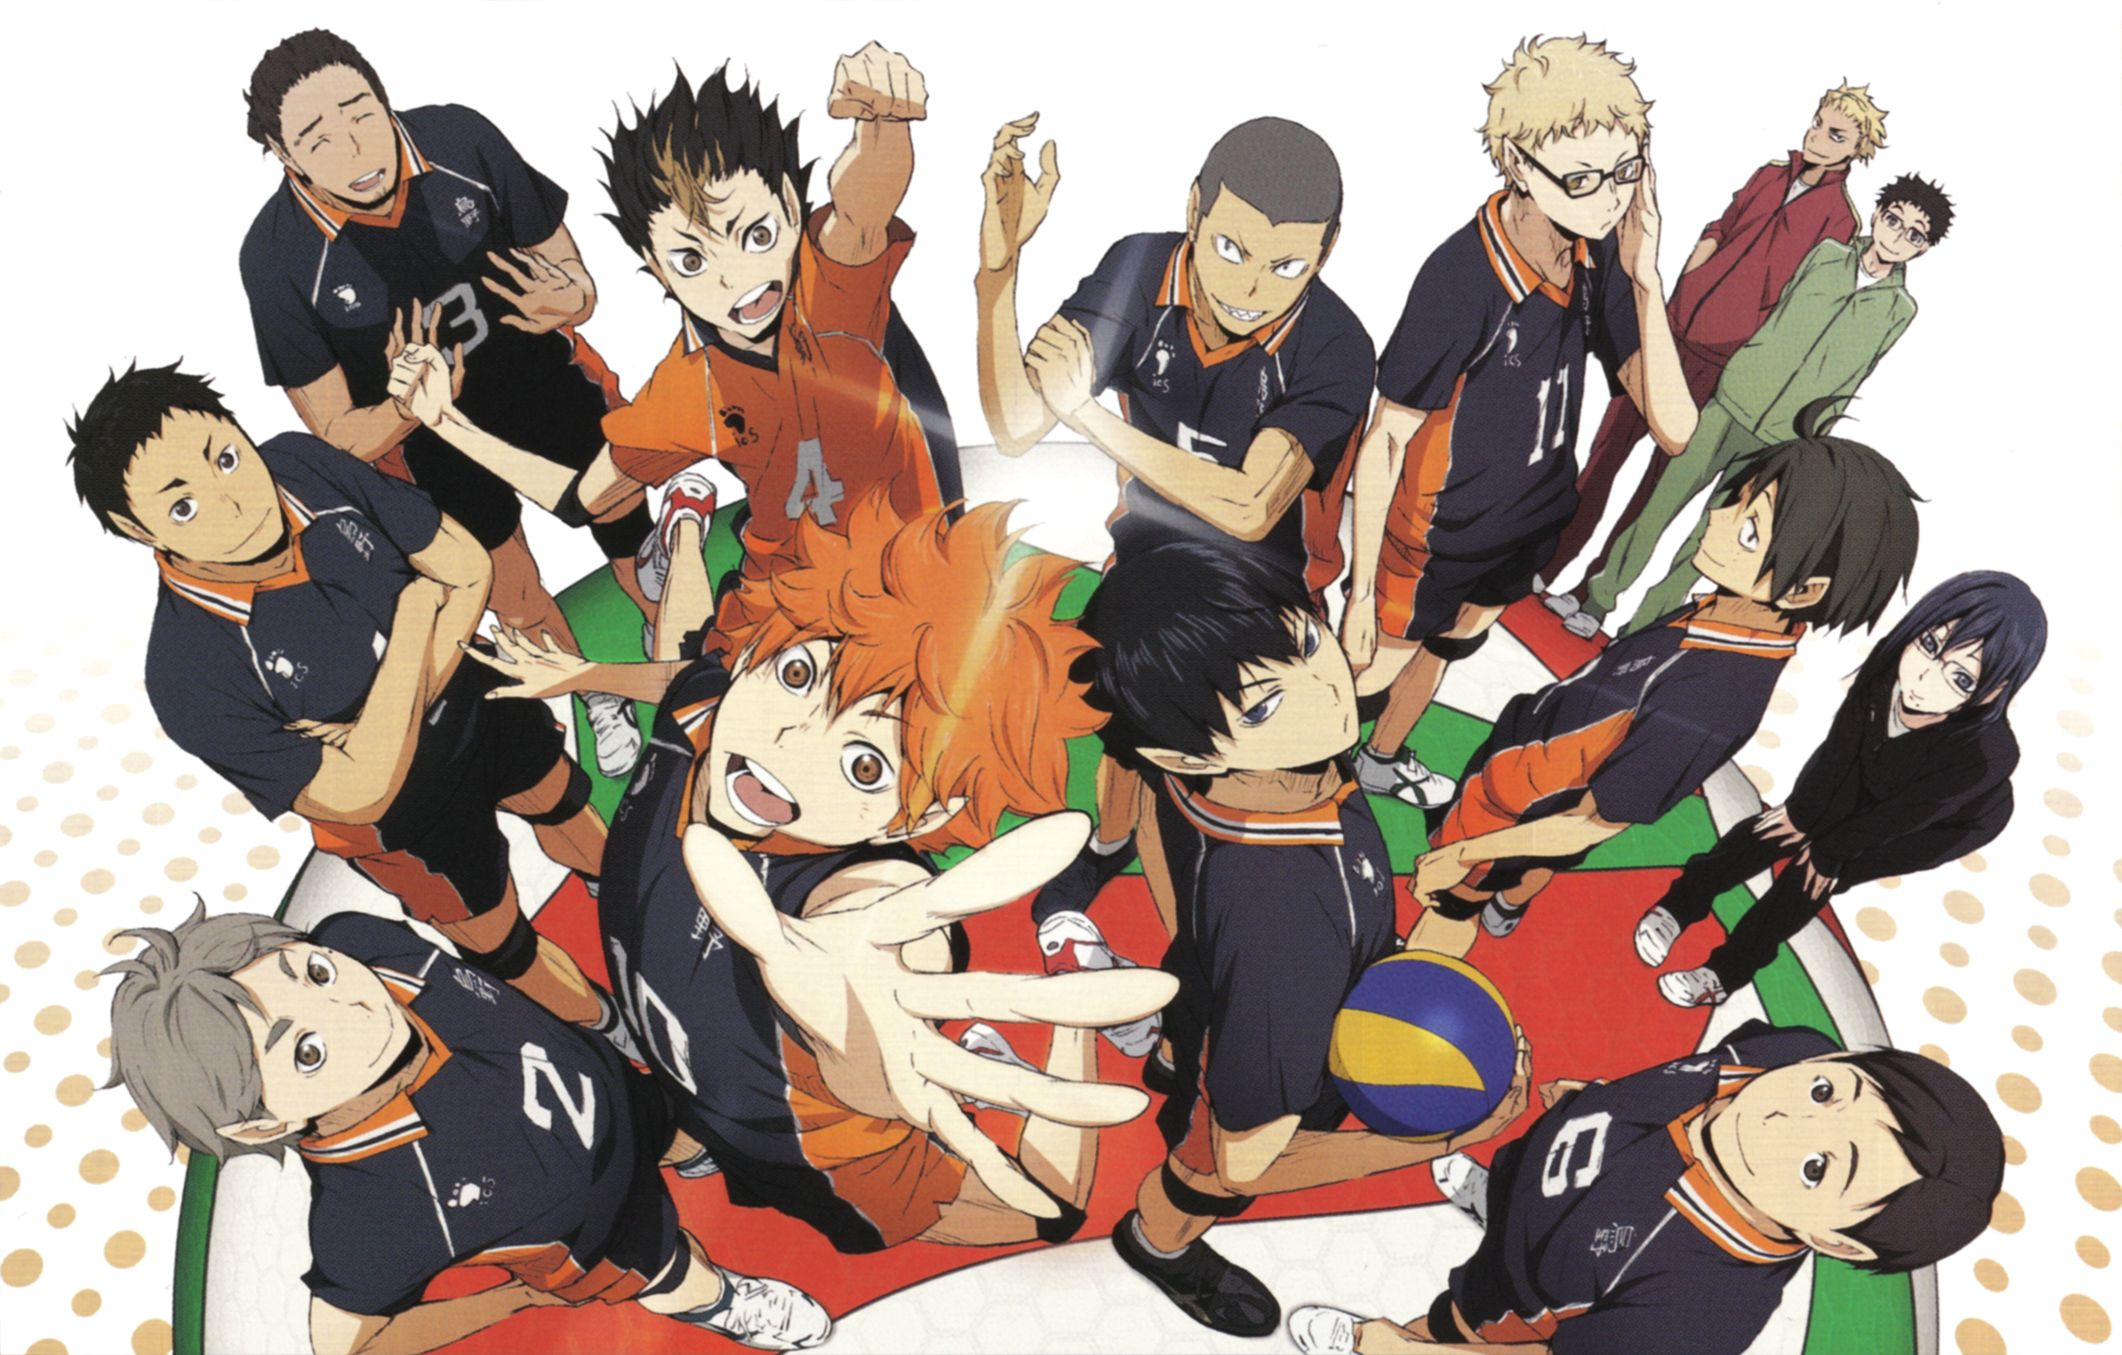 Haikyuu Anime Wallpapers Top Free Haikyuu Anime